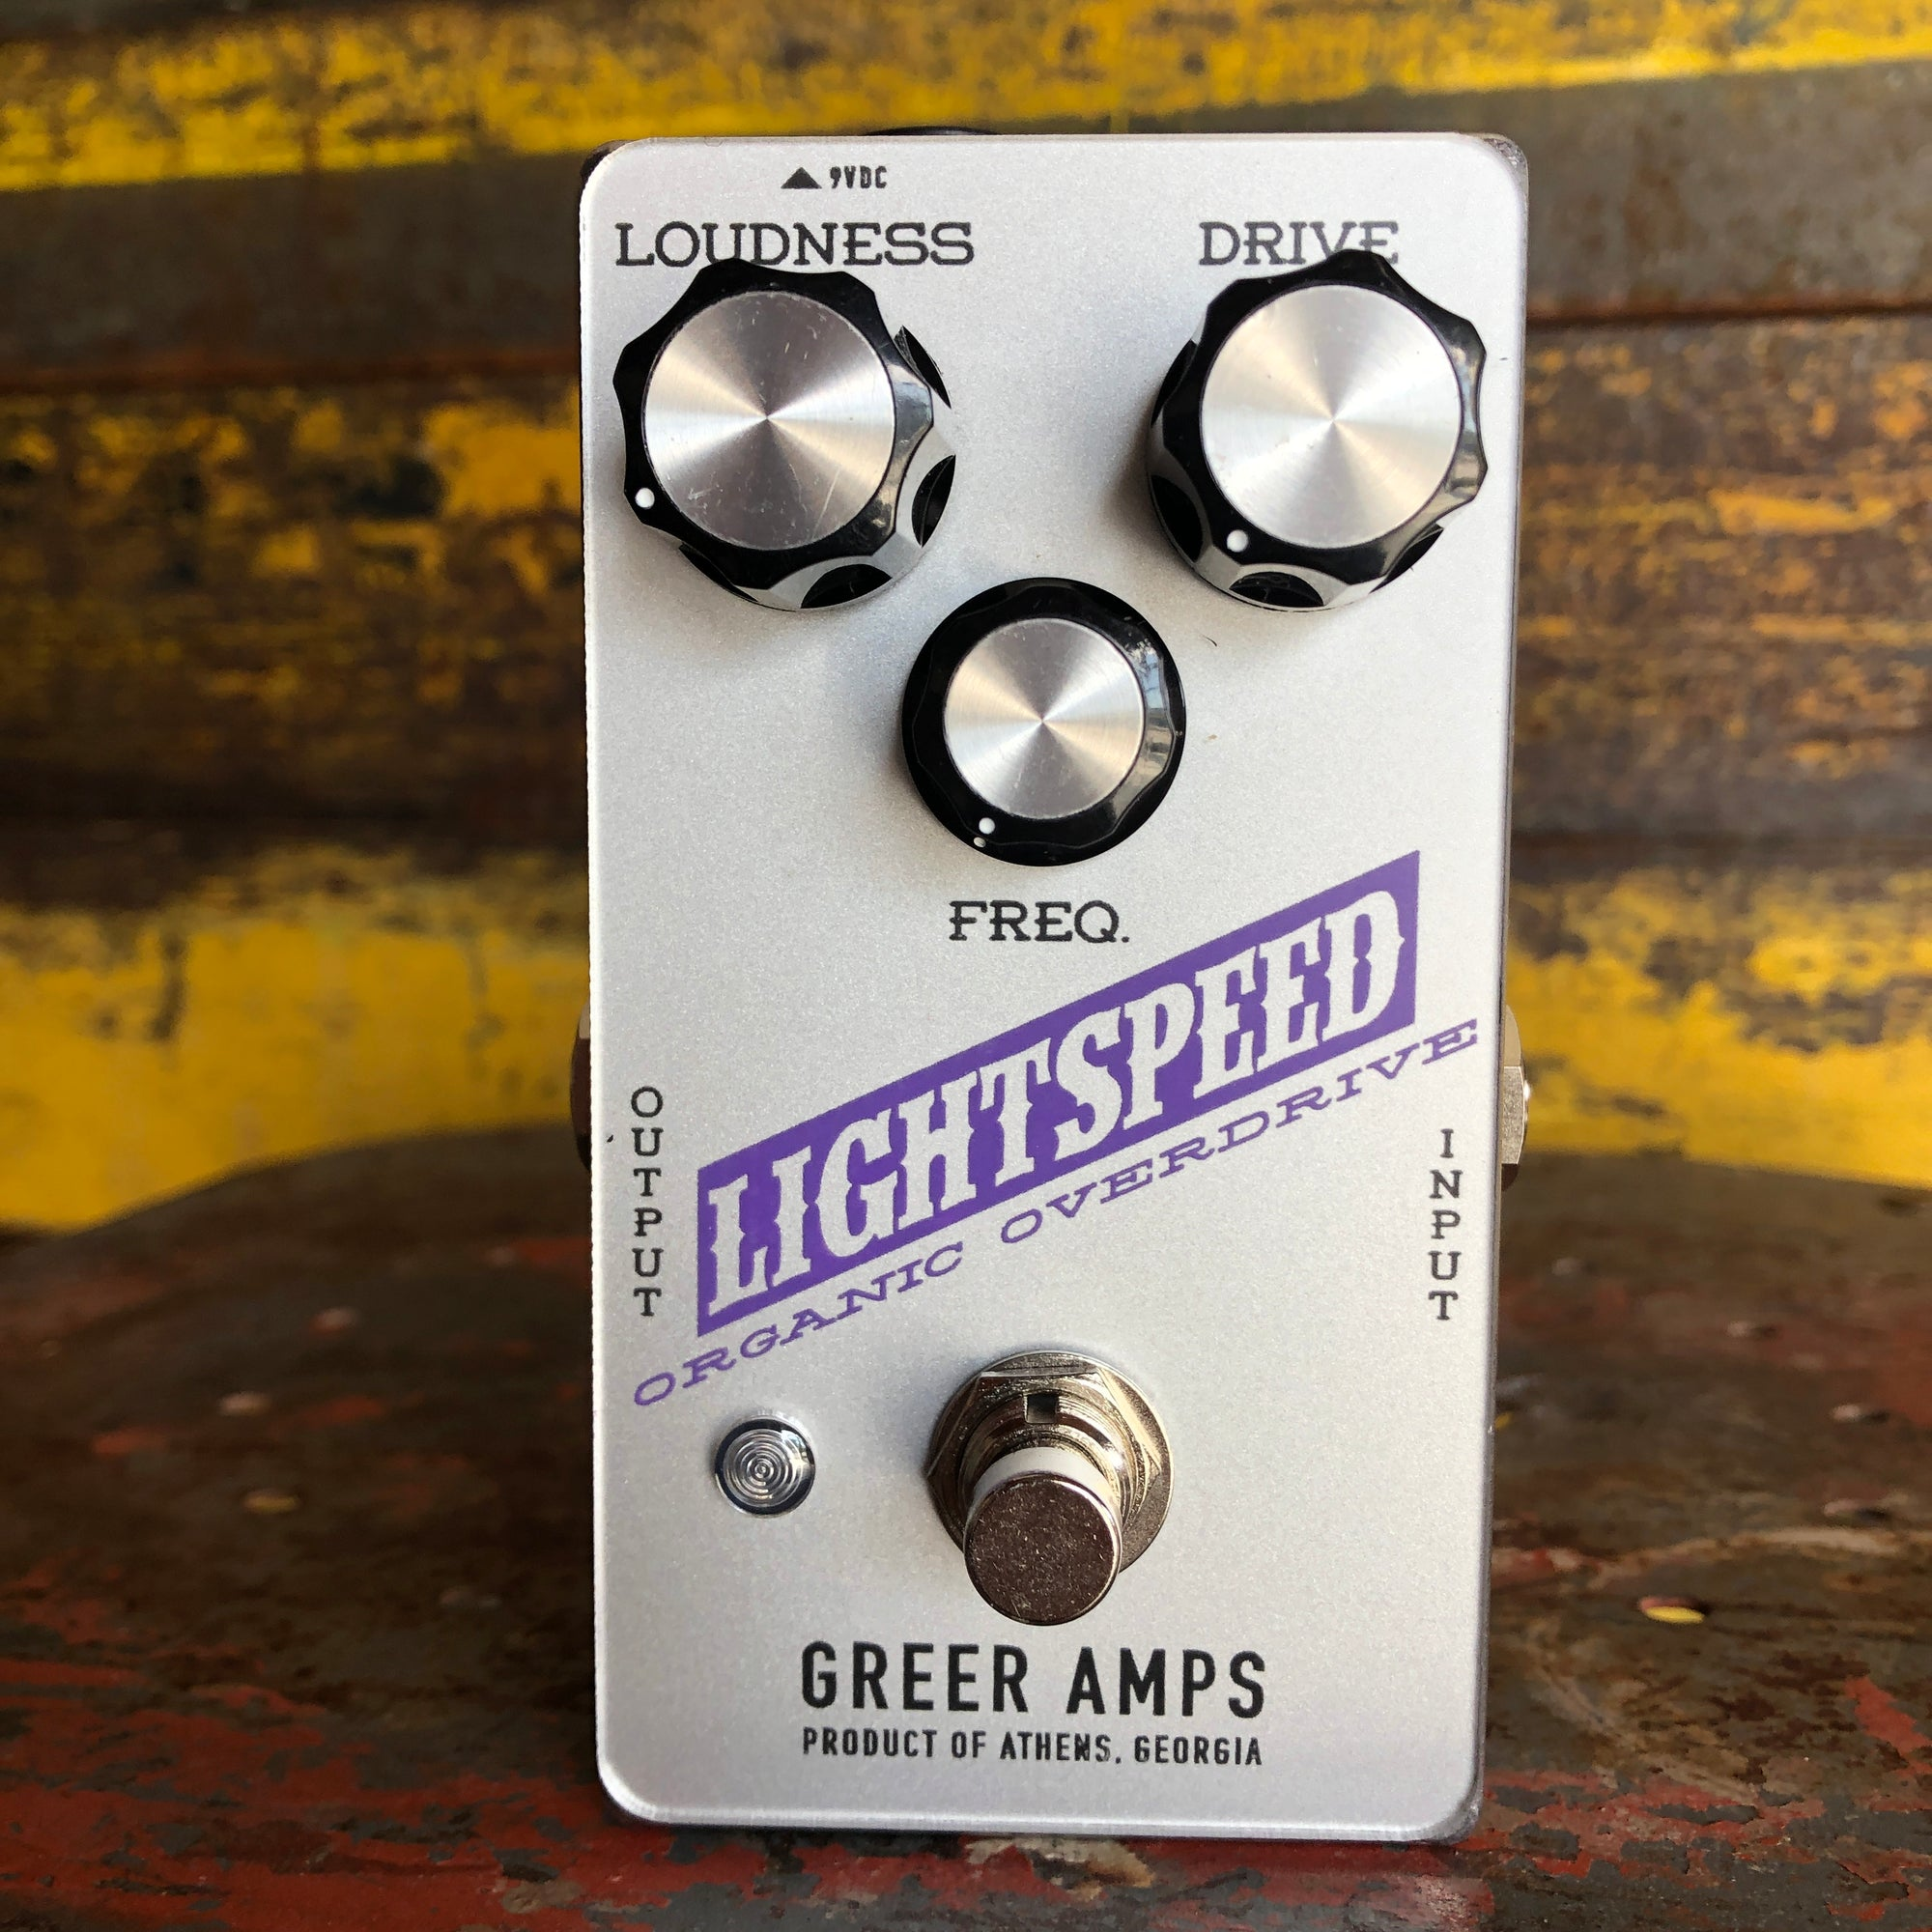 Greer Amps Lightspeed Organic Overdrive - Limited Edition Silver / Purple Colorway